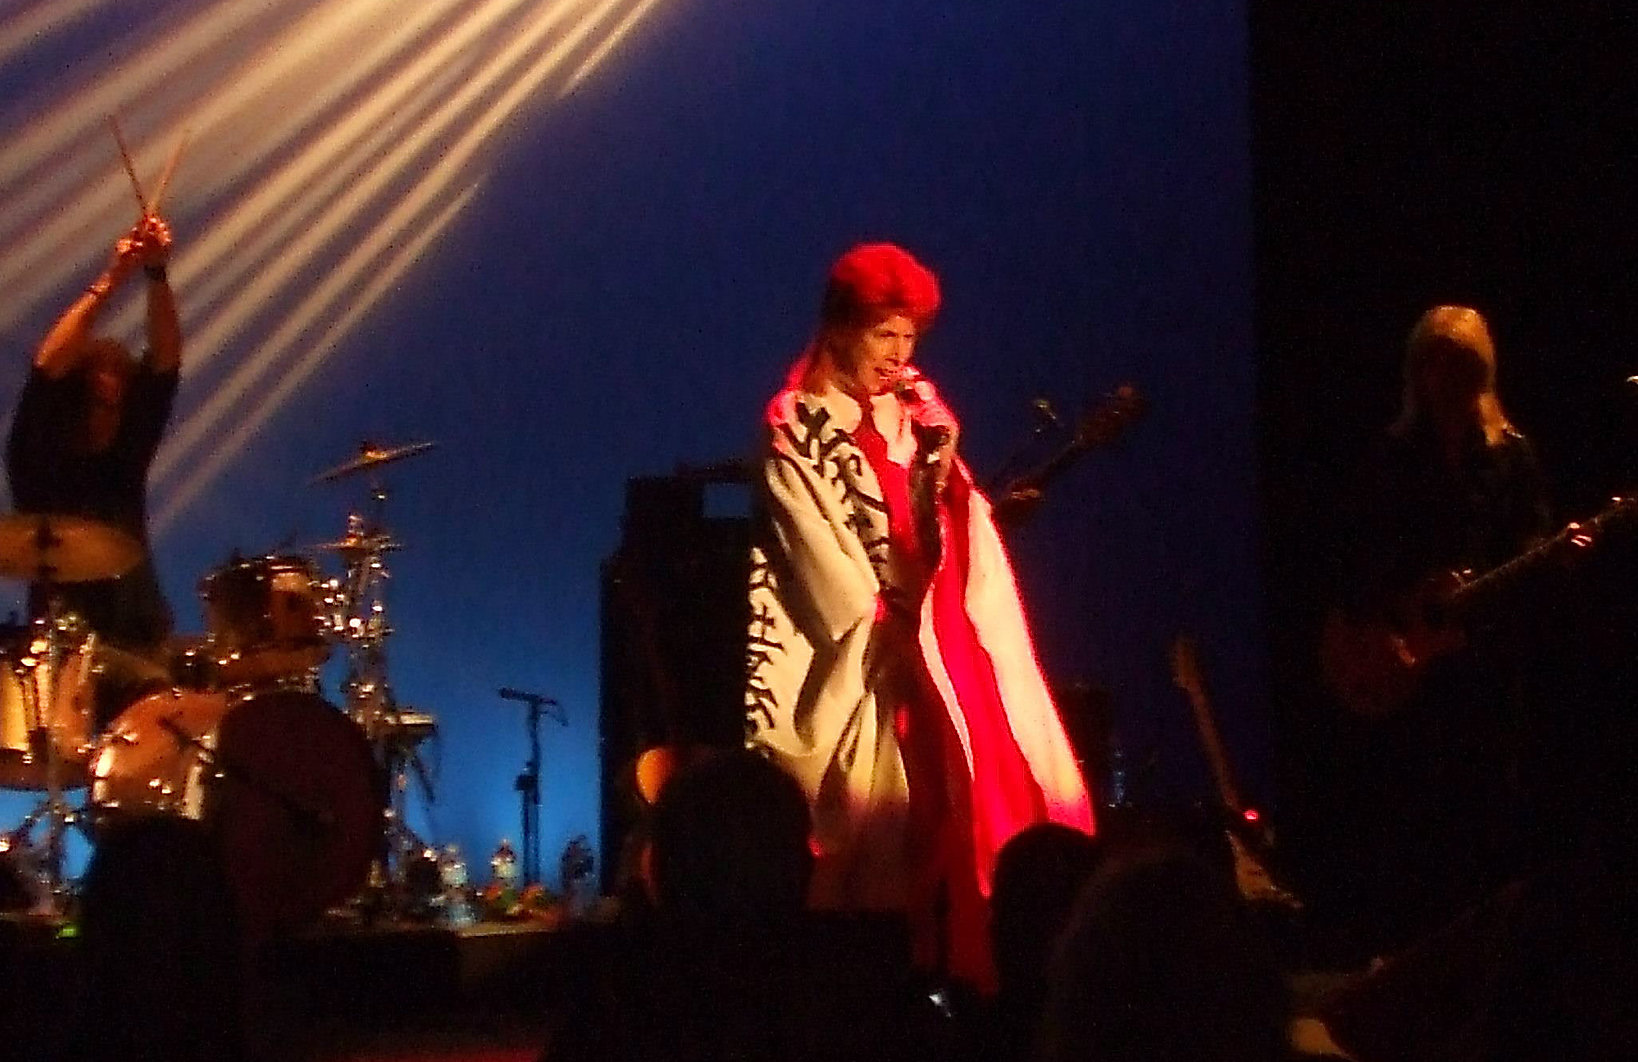 david brighton as david bowie cape